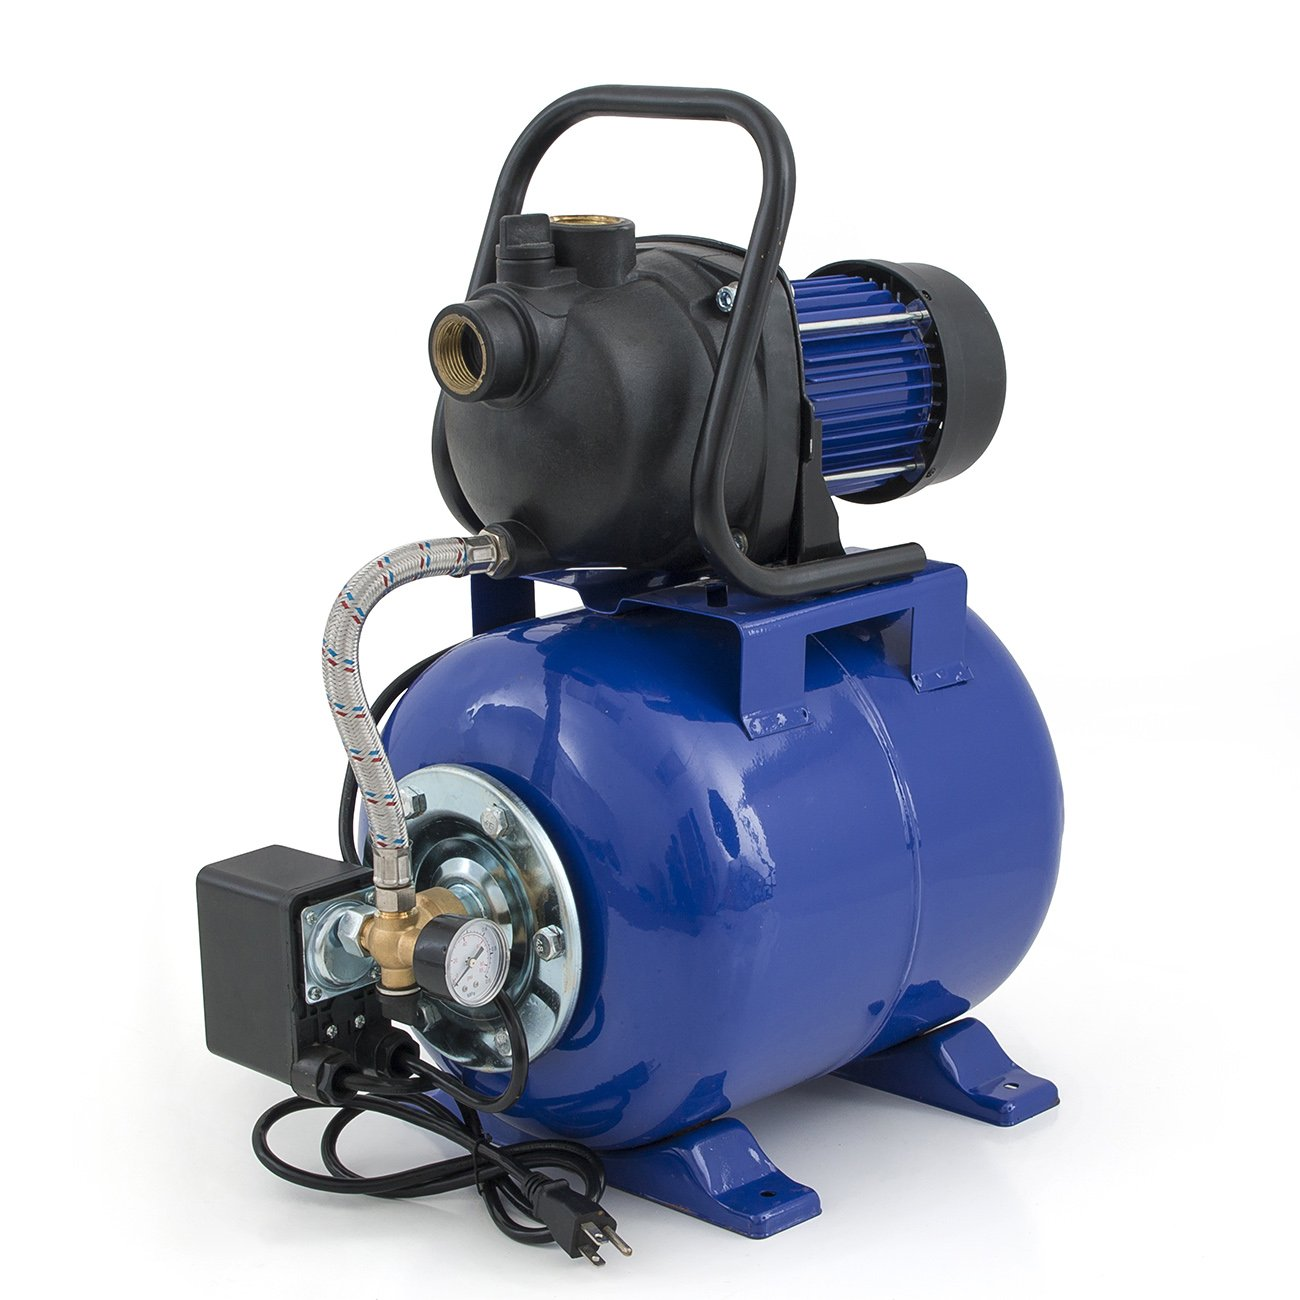 ARKSEN Pressurized Water Booster Well Jet Pool Pump, 1.6HP, 1000GPH, 1200W